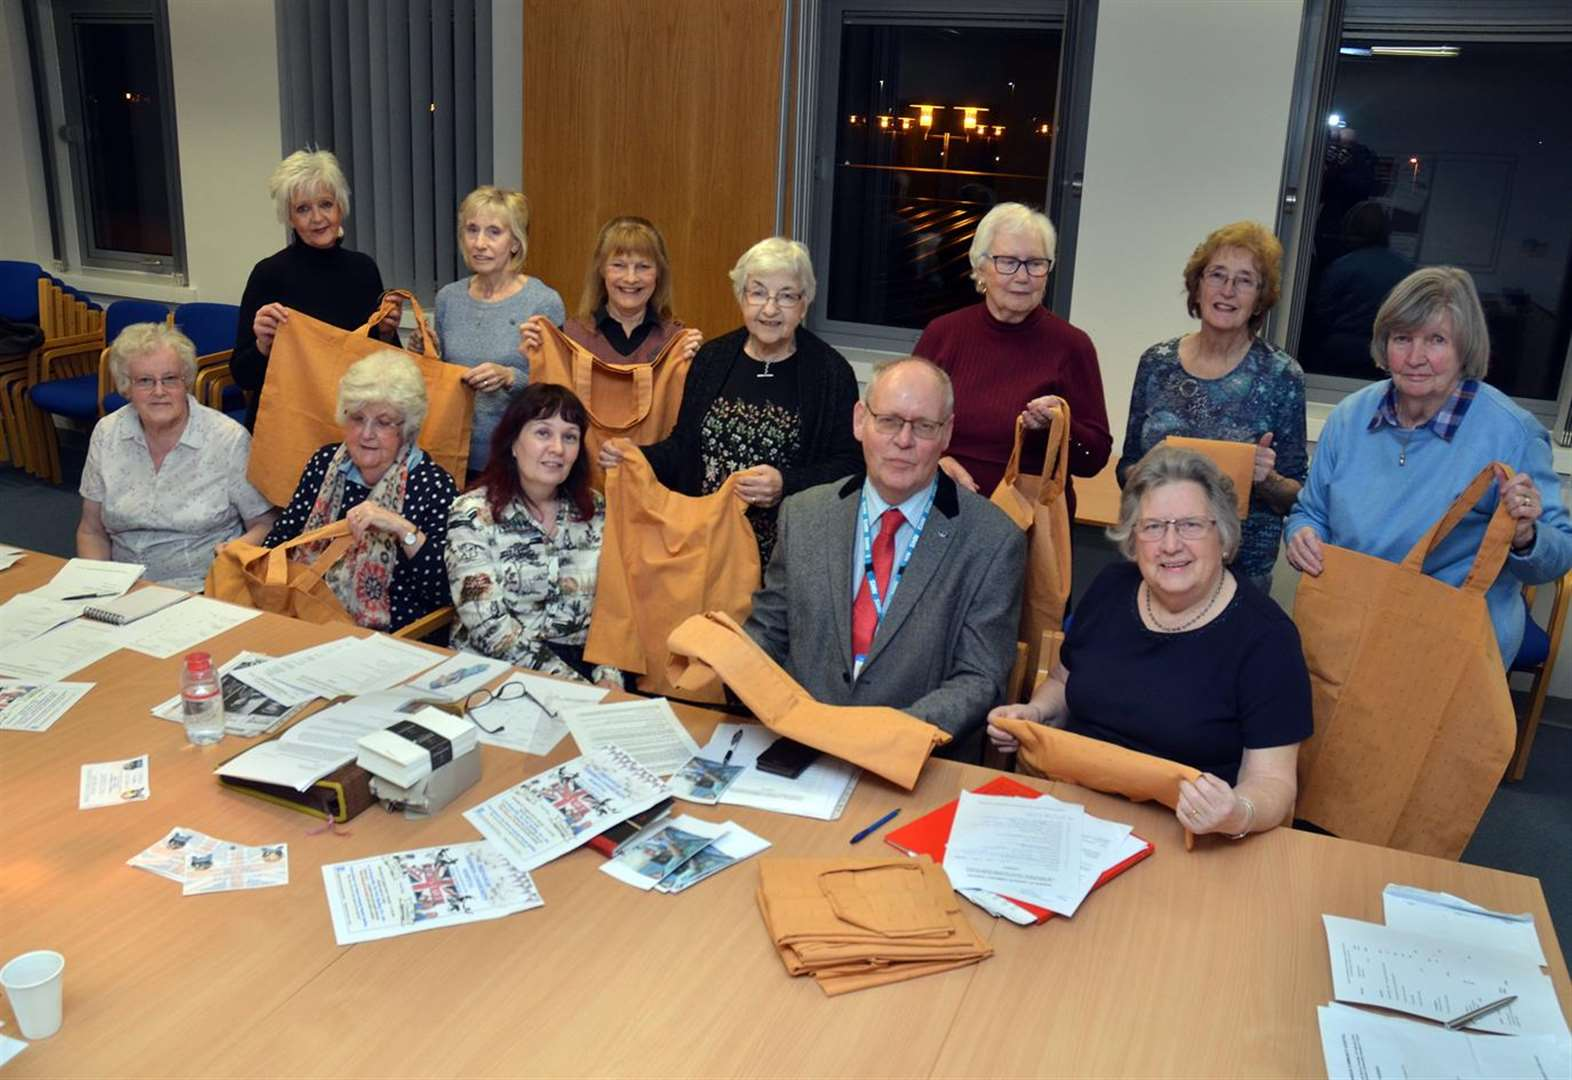 Ultrasound scanner and patients' bags donated by Friends of Spalding hospital